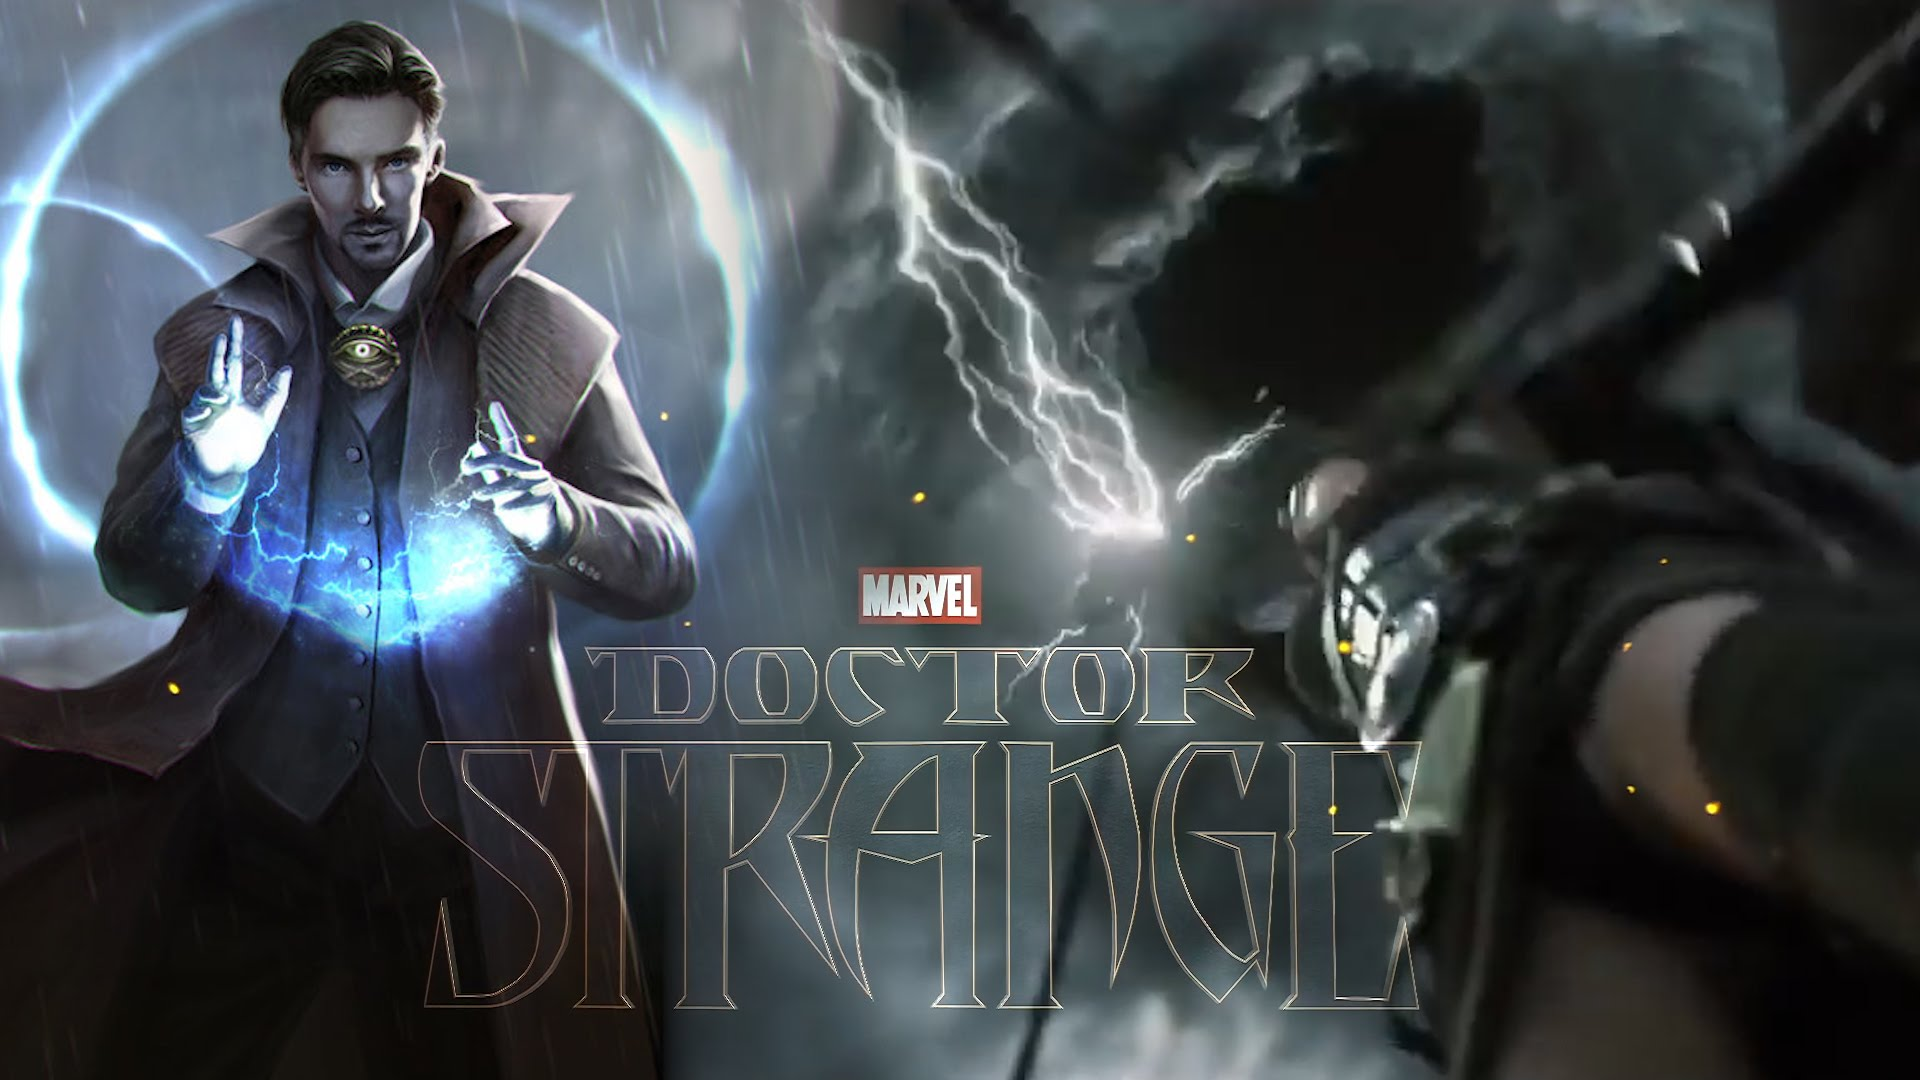 Doctor Strange Wallpapers Images ~ Sdeerwallpaper